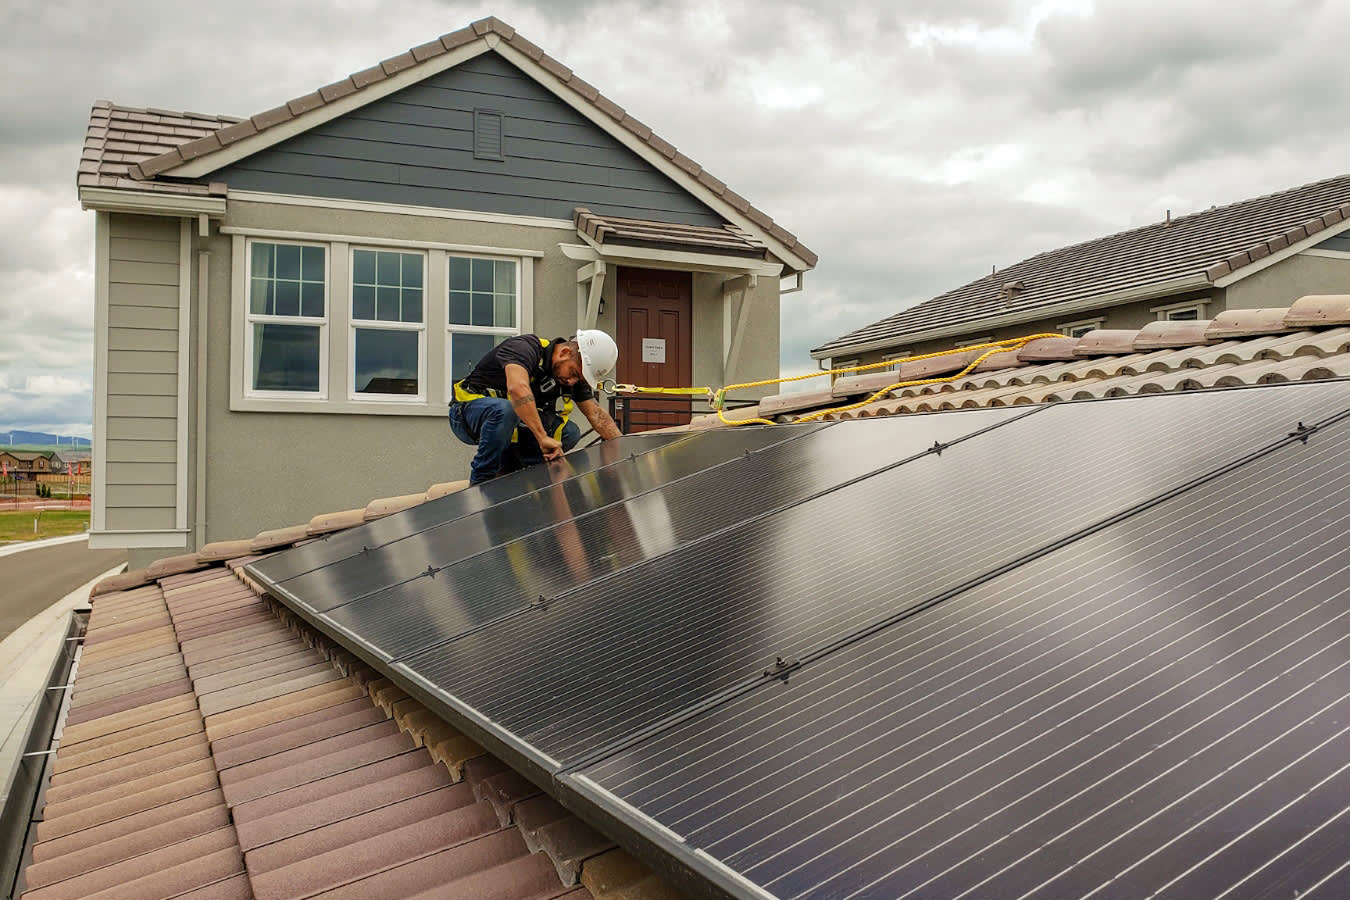 After being rocked by Trump tariffs, the solar energy